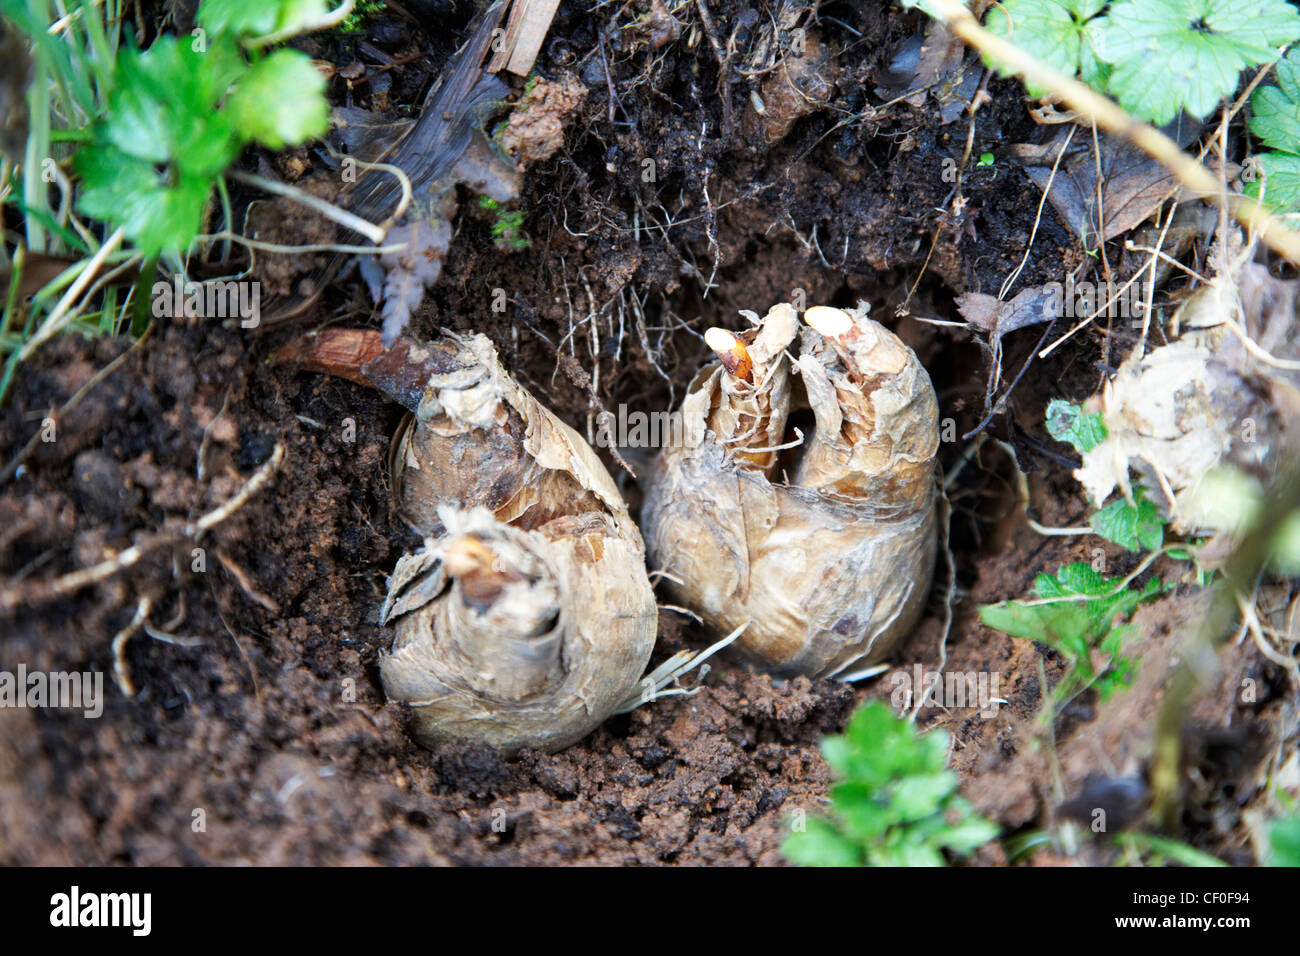 When how to plant daffodil bulbs - Stock Photo Planting Daffodil Flower Bulbs In A Garden In The Uk